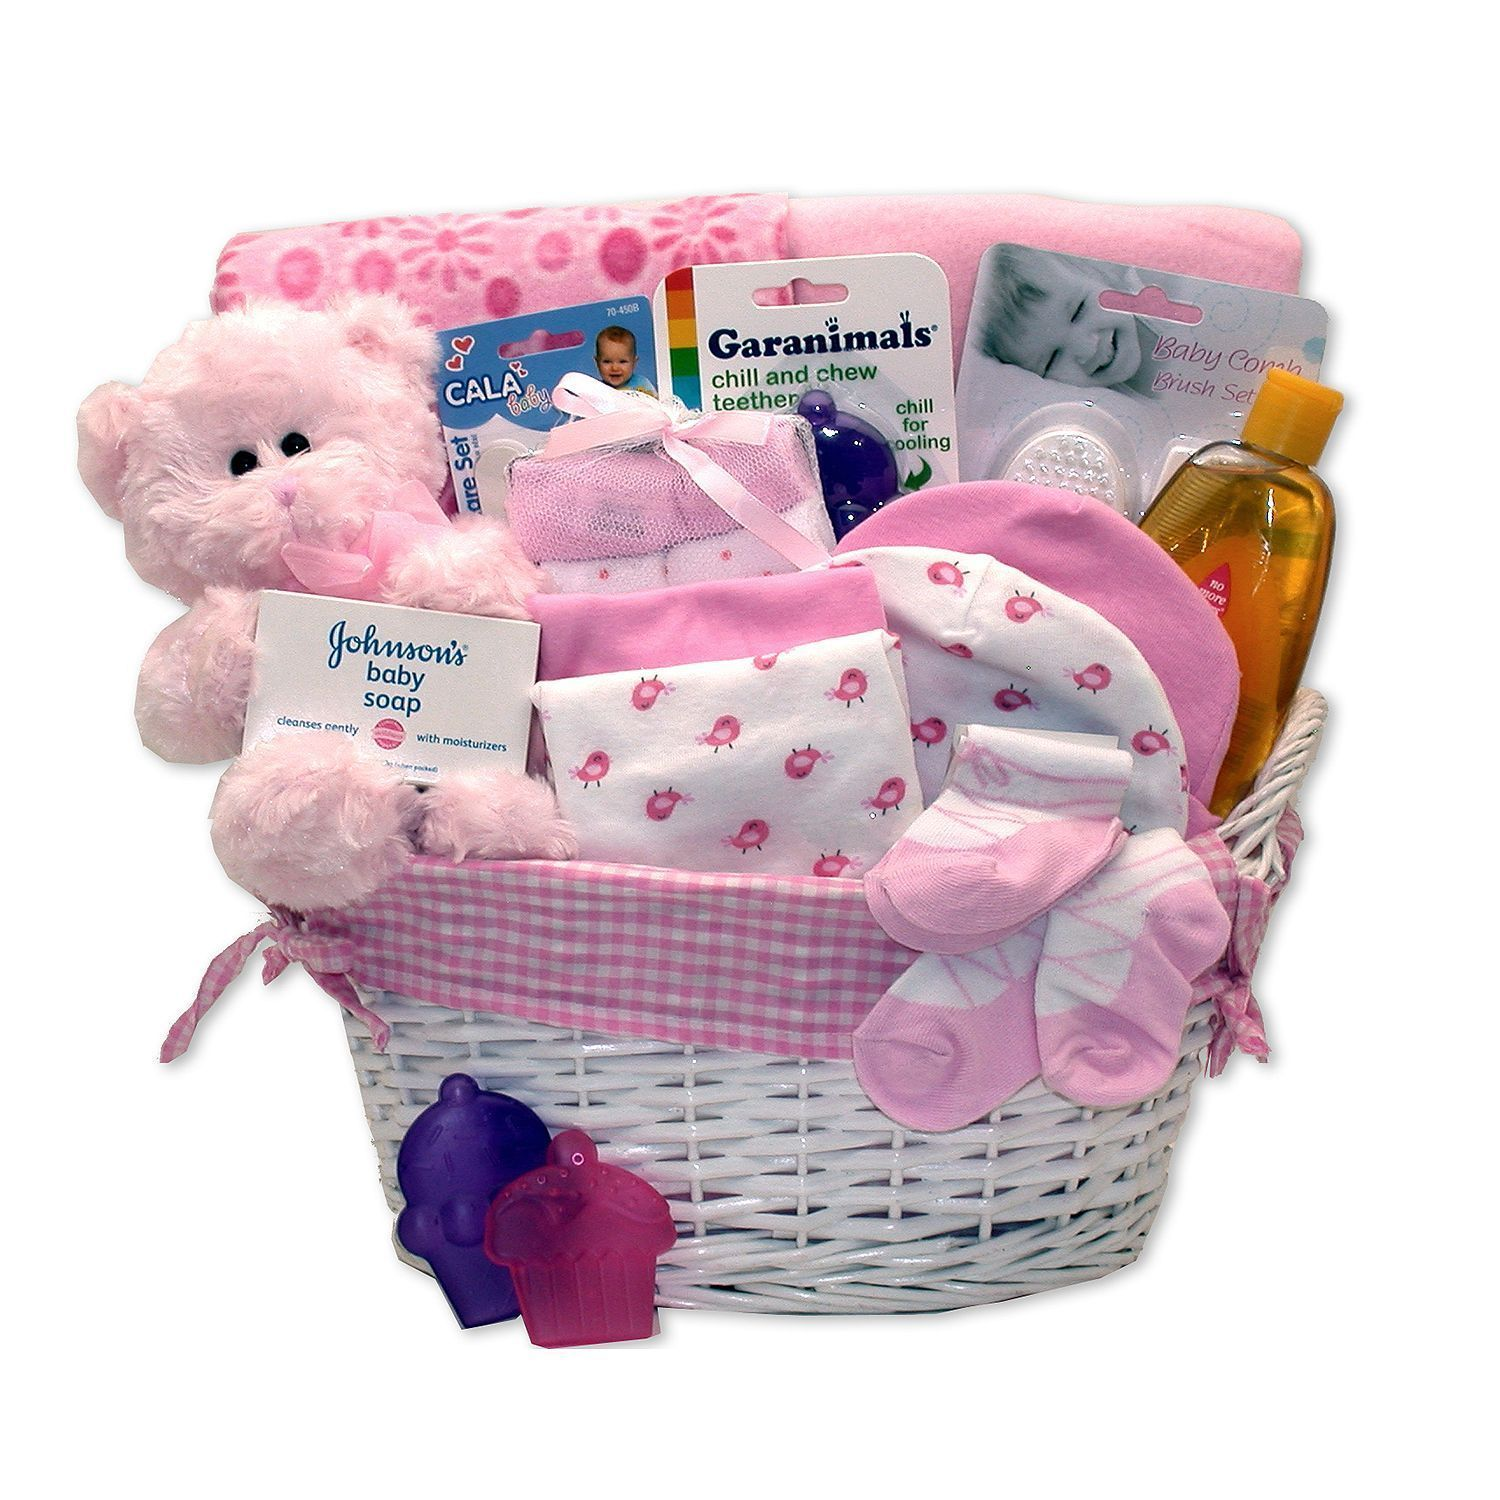 Simply Baby Necessities Gift Basket in Pink